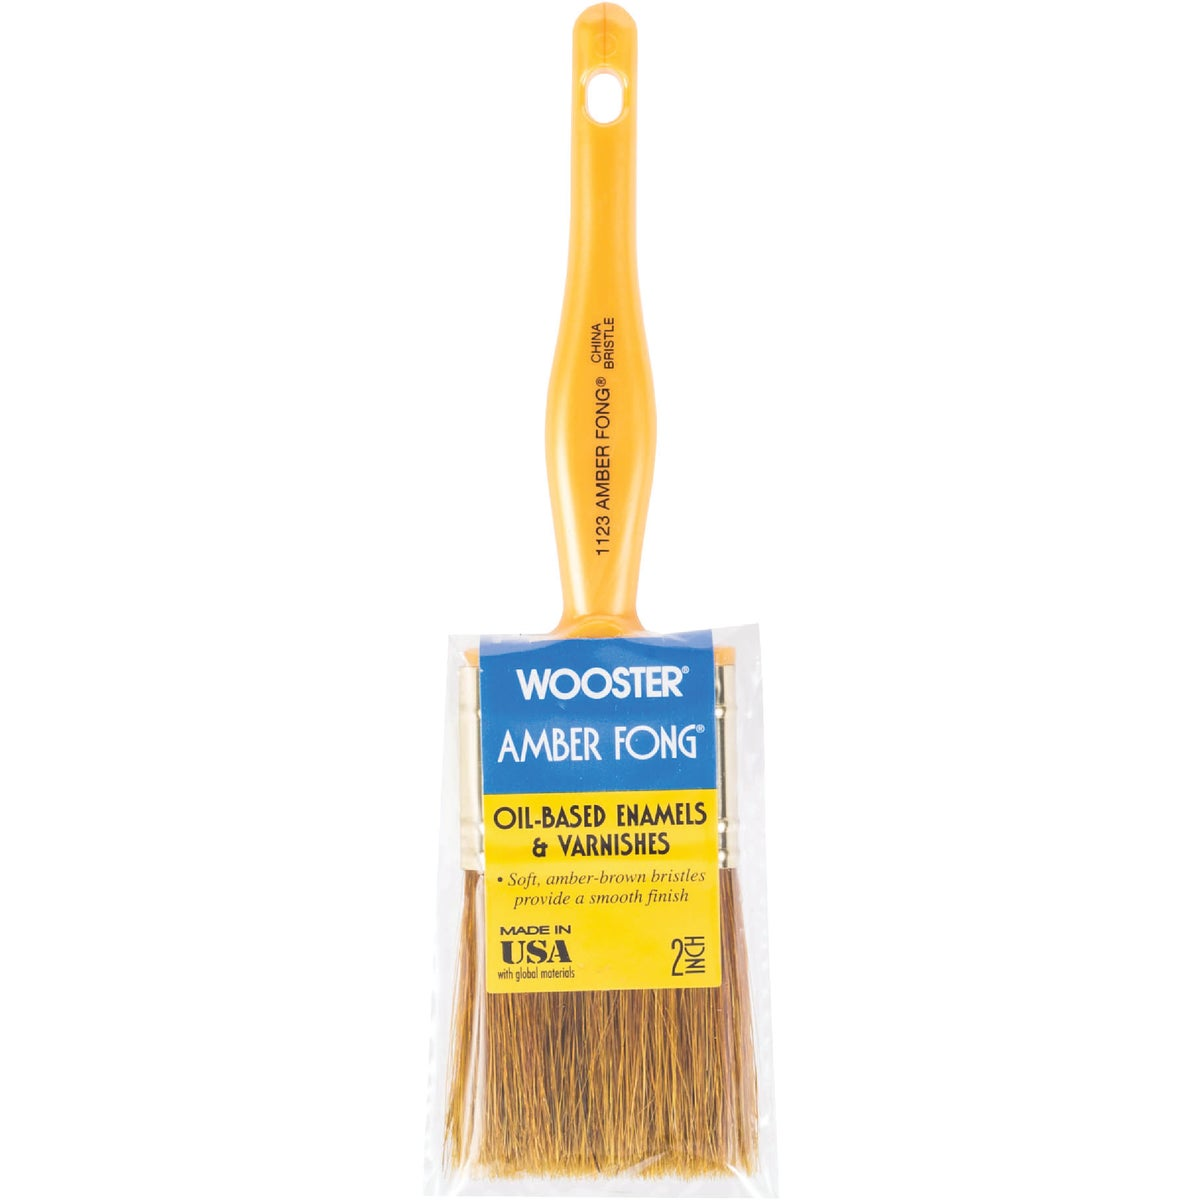 "2"" AMBR FONG PAINT BRUSH - 1123-2"" by Wooster Brush Co"